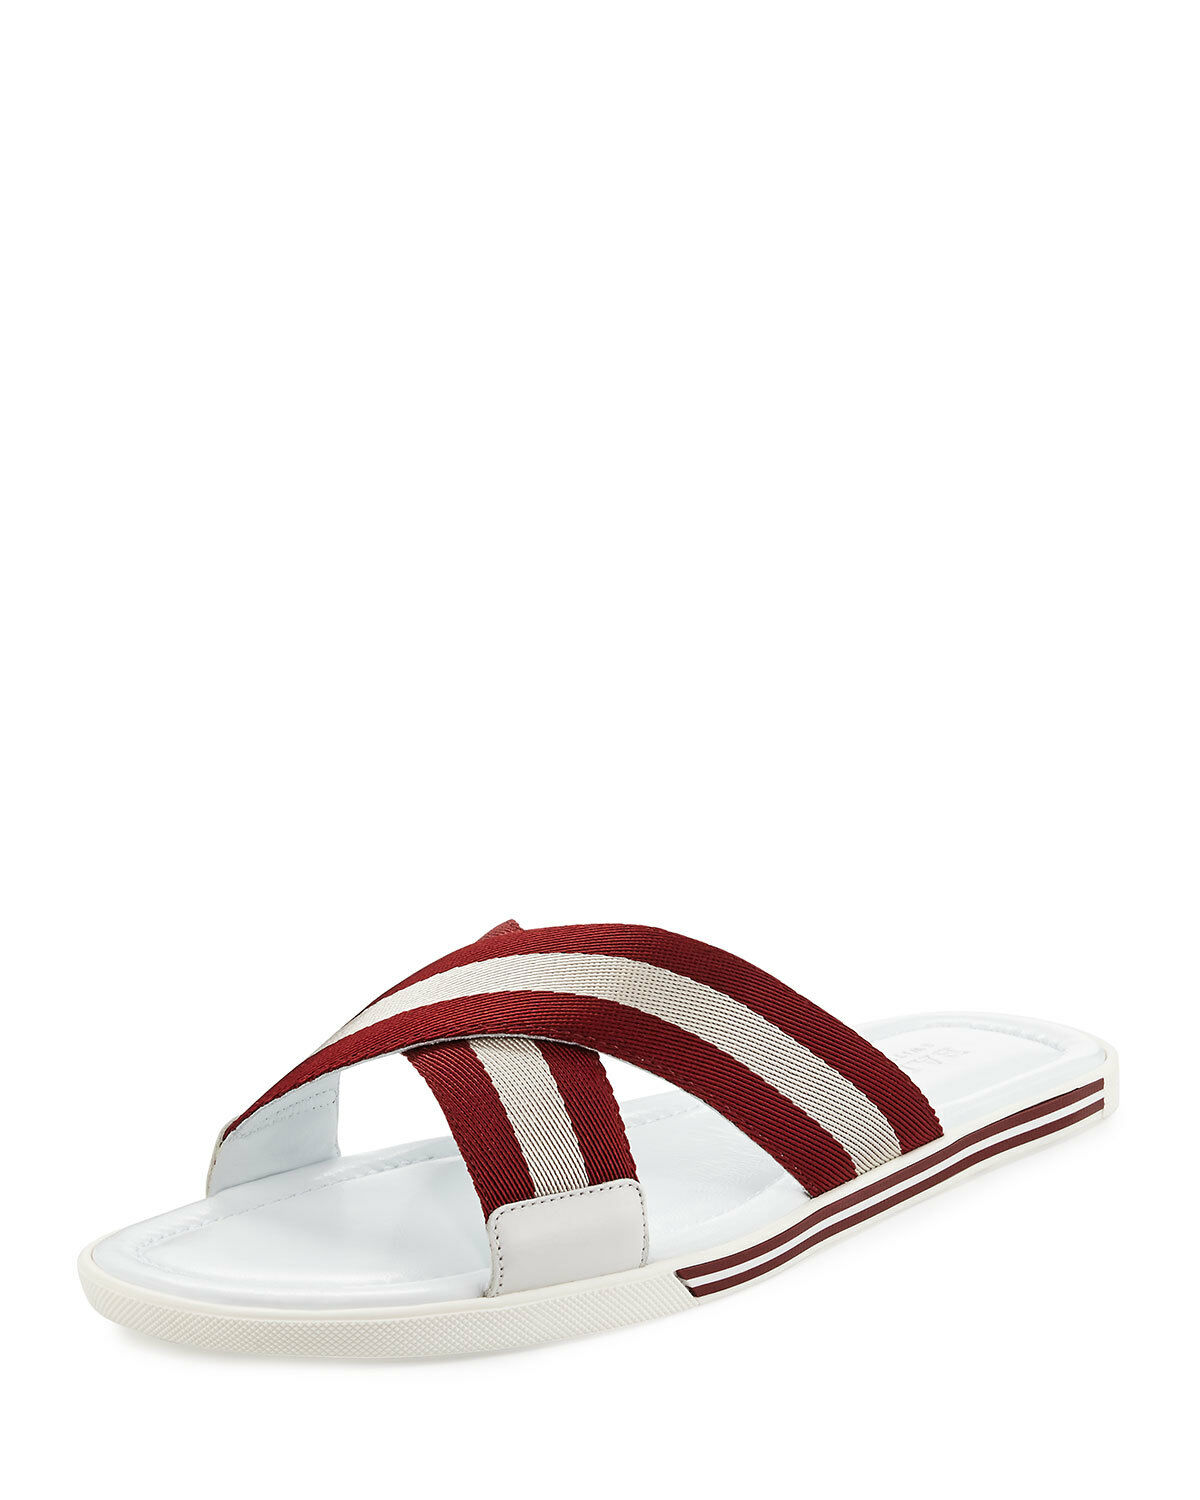 BALLY BONKS bianca LEATHER STRIPED LOGO CRISSCROSS SANDAL SLIDES 12 US 45